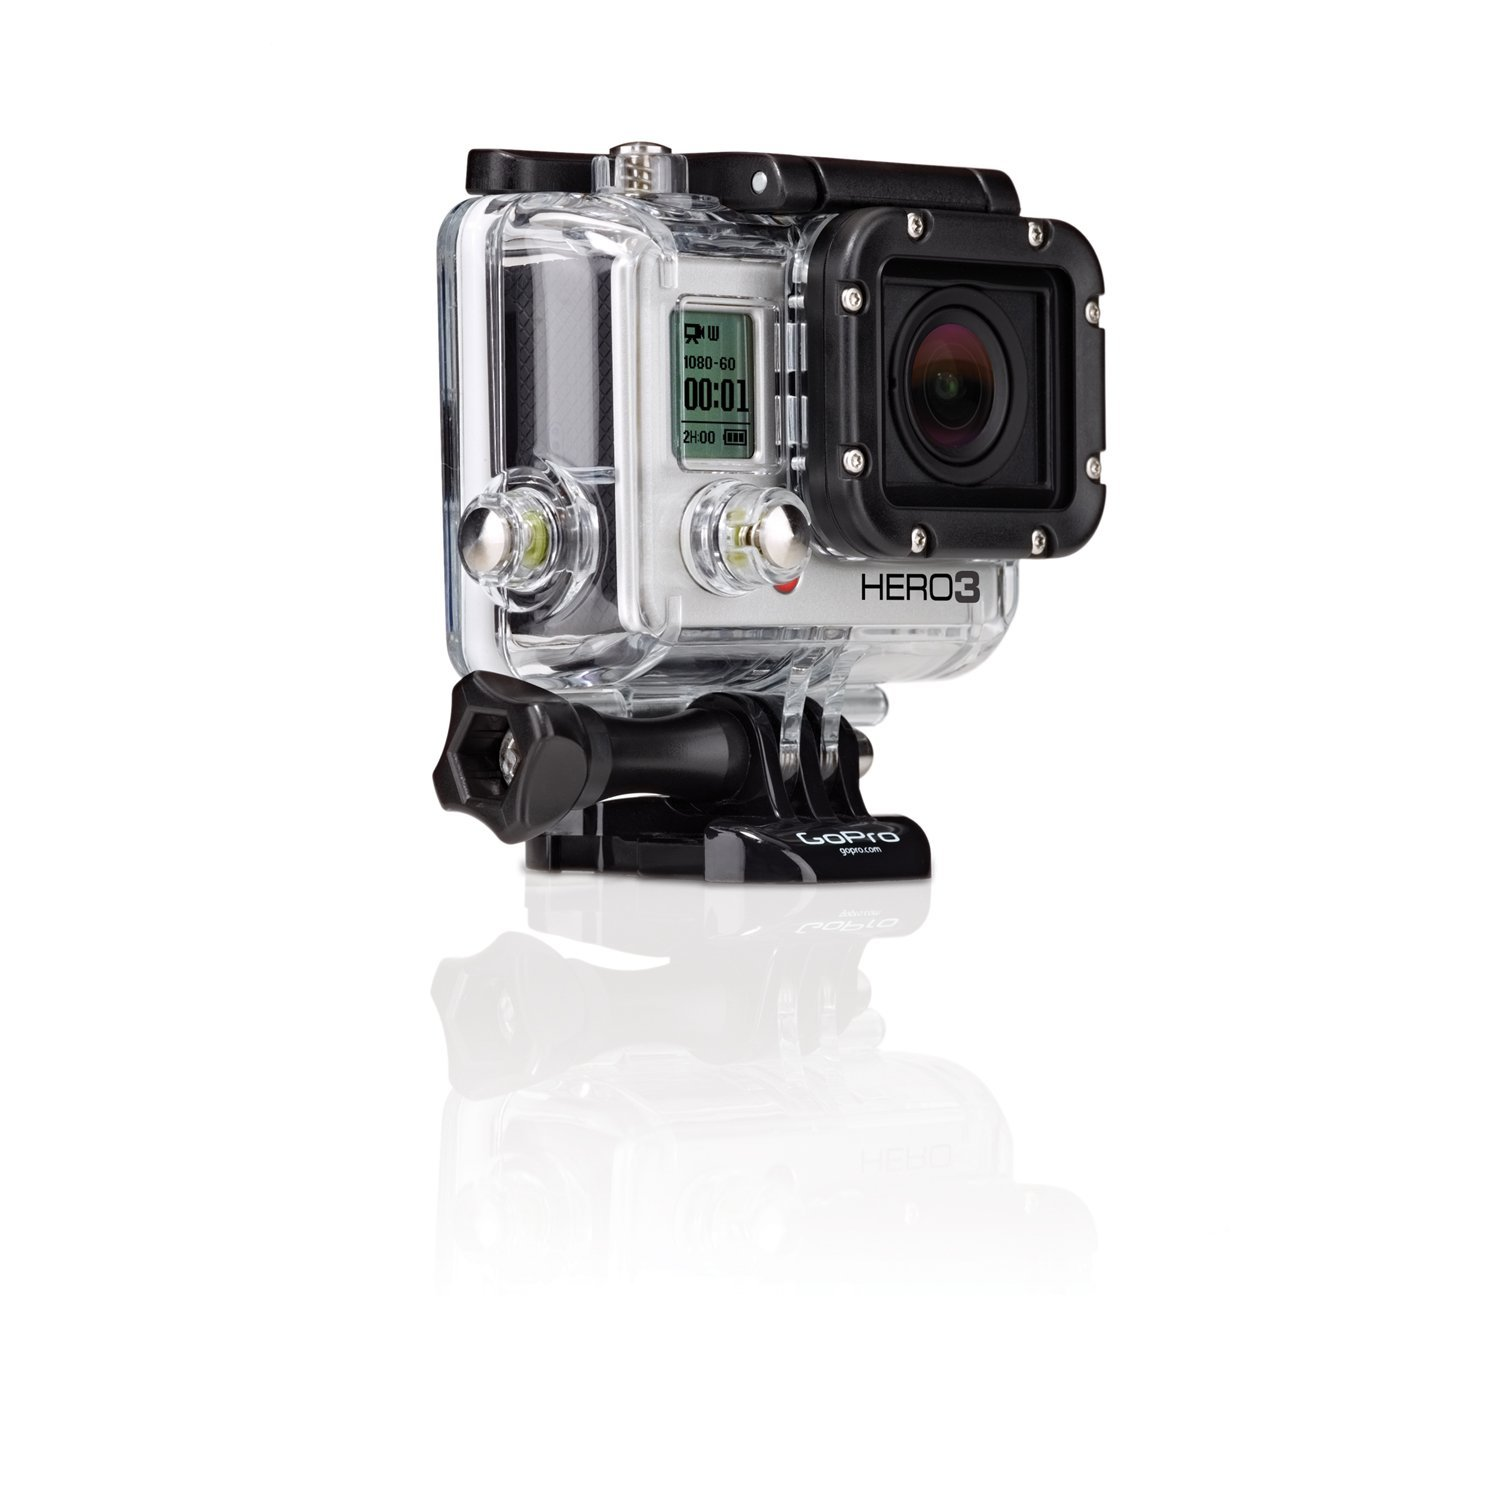 Gopro hero3 black edition buy and offers on bikeinn.